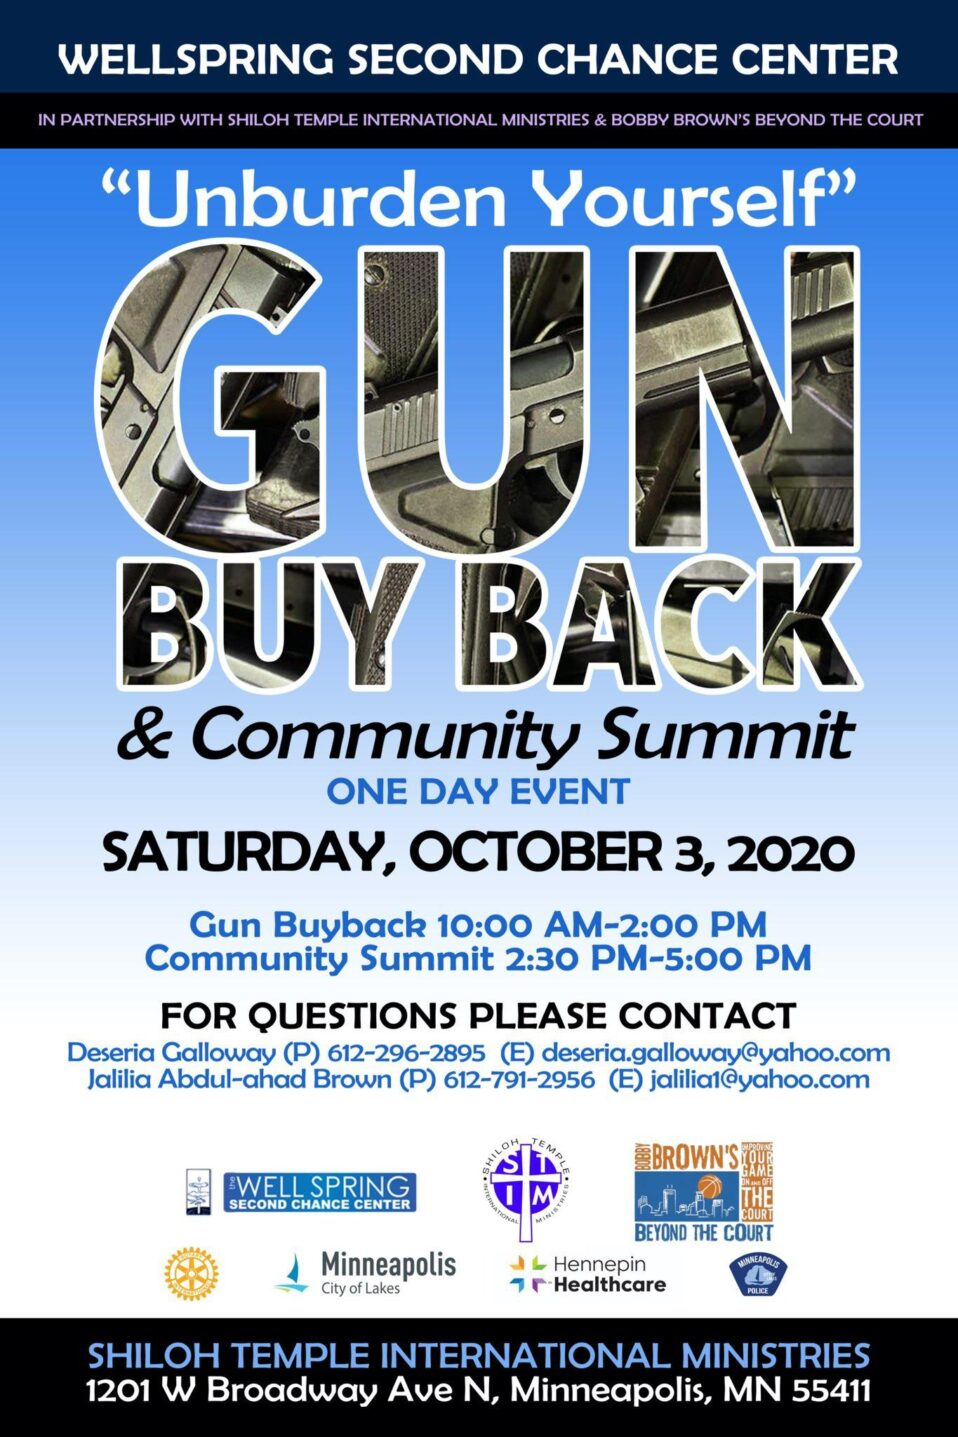 Unburden Yourself Gun Buy Back & Summit